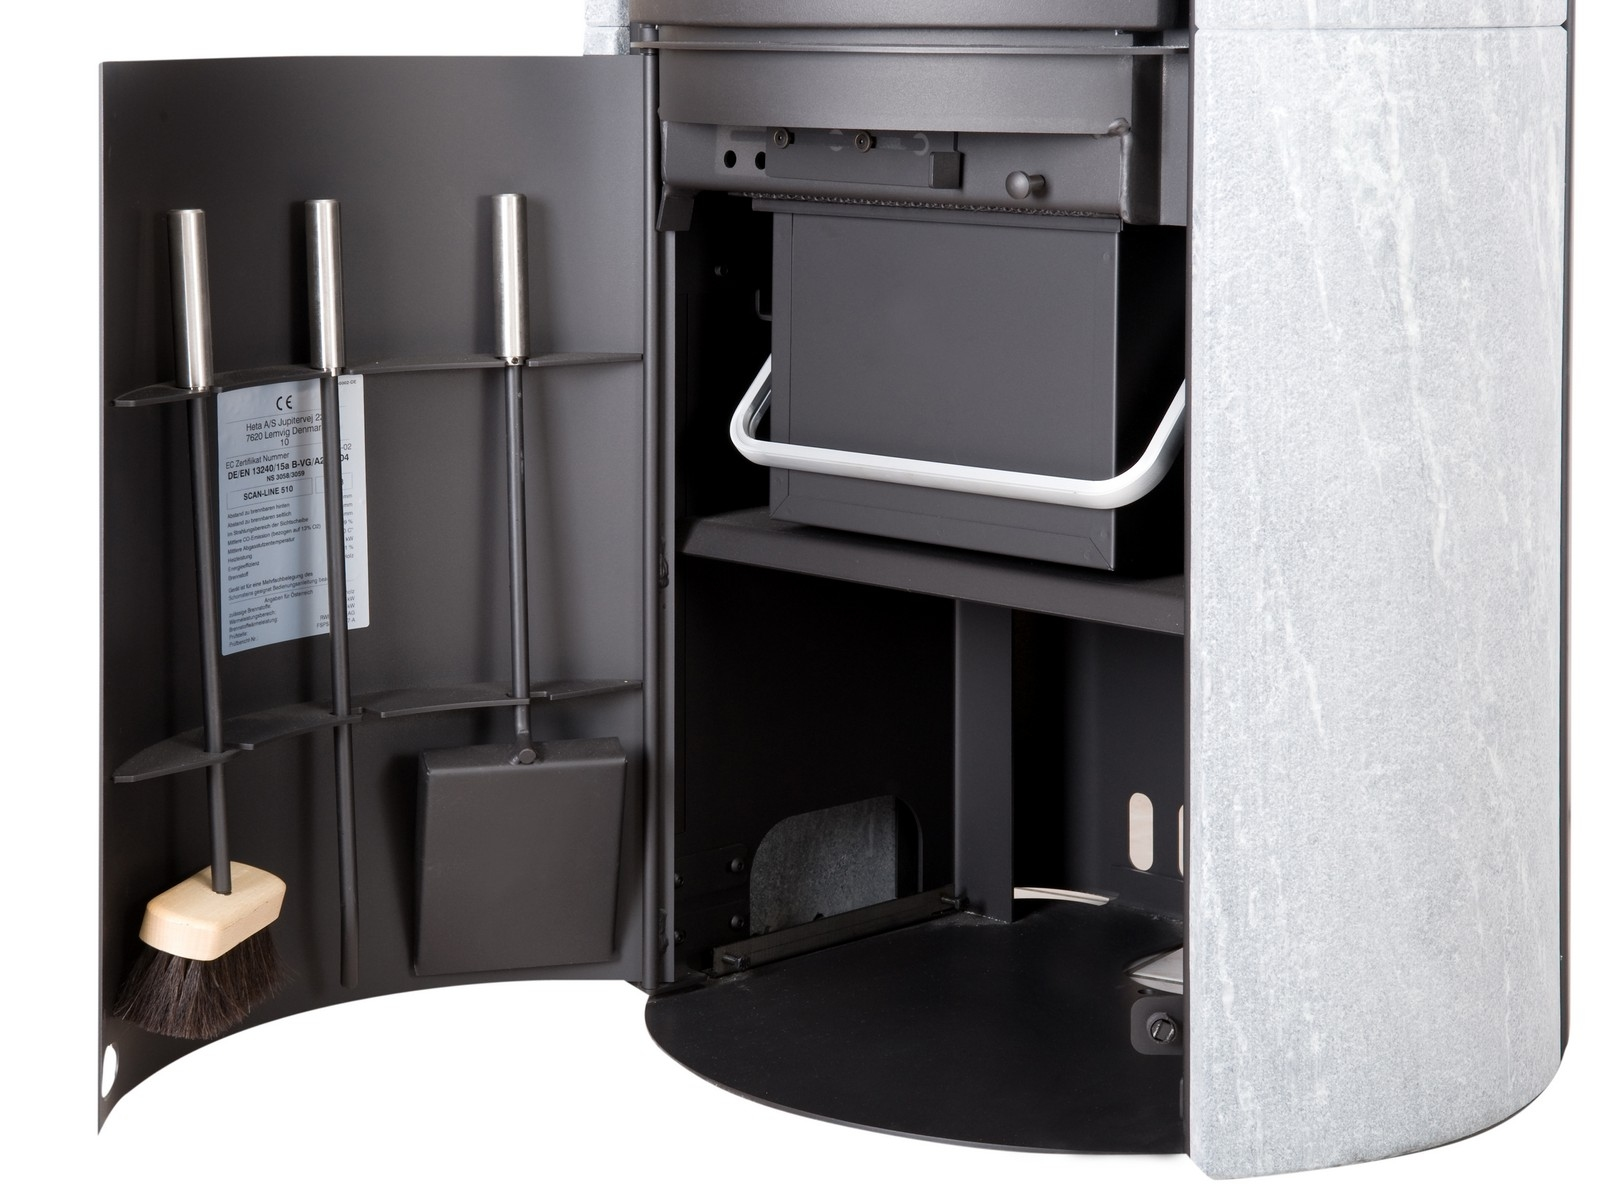 heta sl820 vitr r f chauffage po les bois. Black Bedroom Furniture Sets. Home Design Ideas